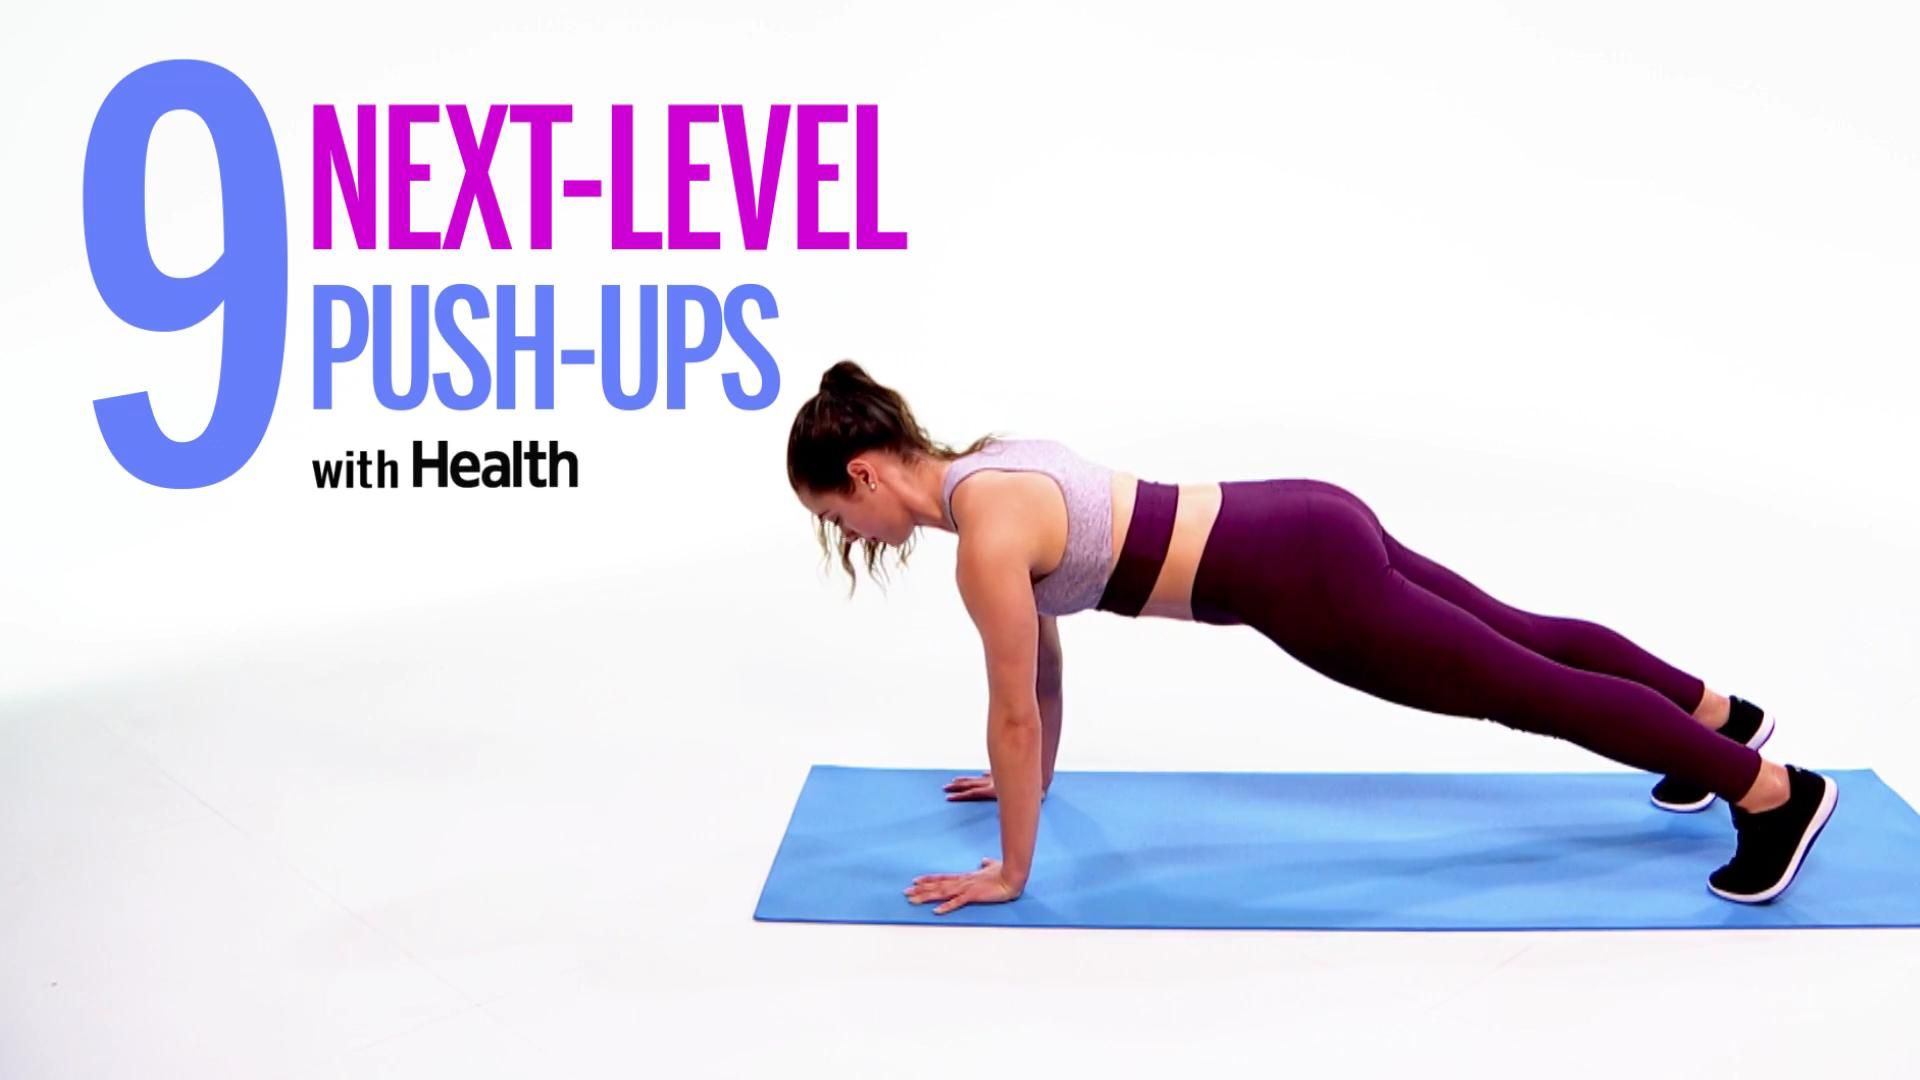 This Push-Up Challenge Will Make You So Much Stronger